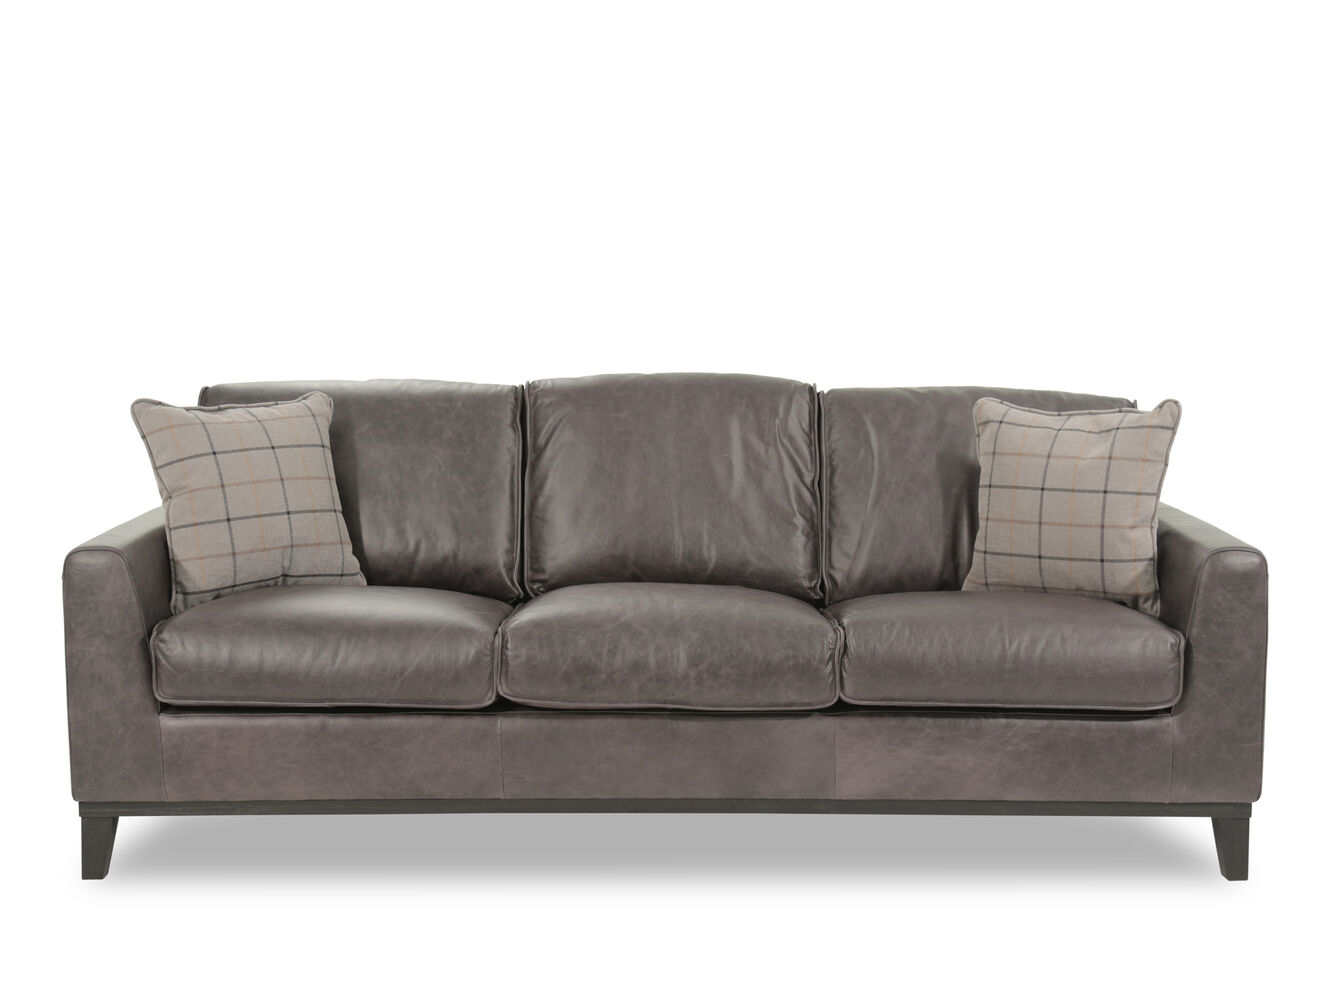 Boulevard vintage cowboy leather gray sofa mathis Cowboy sofa